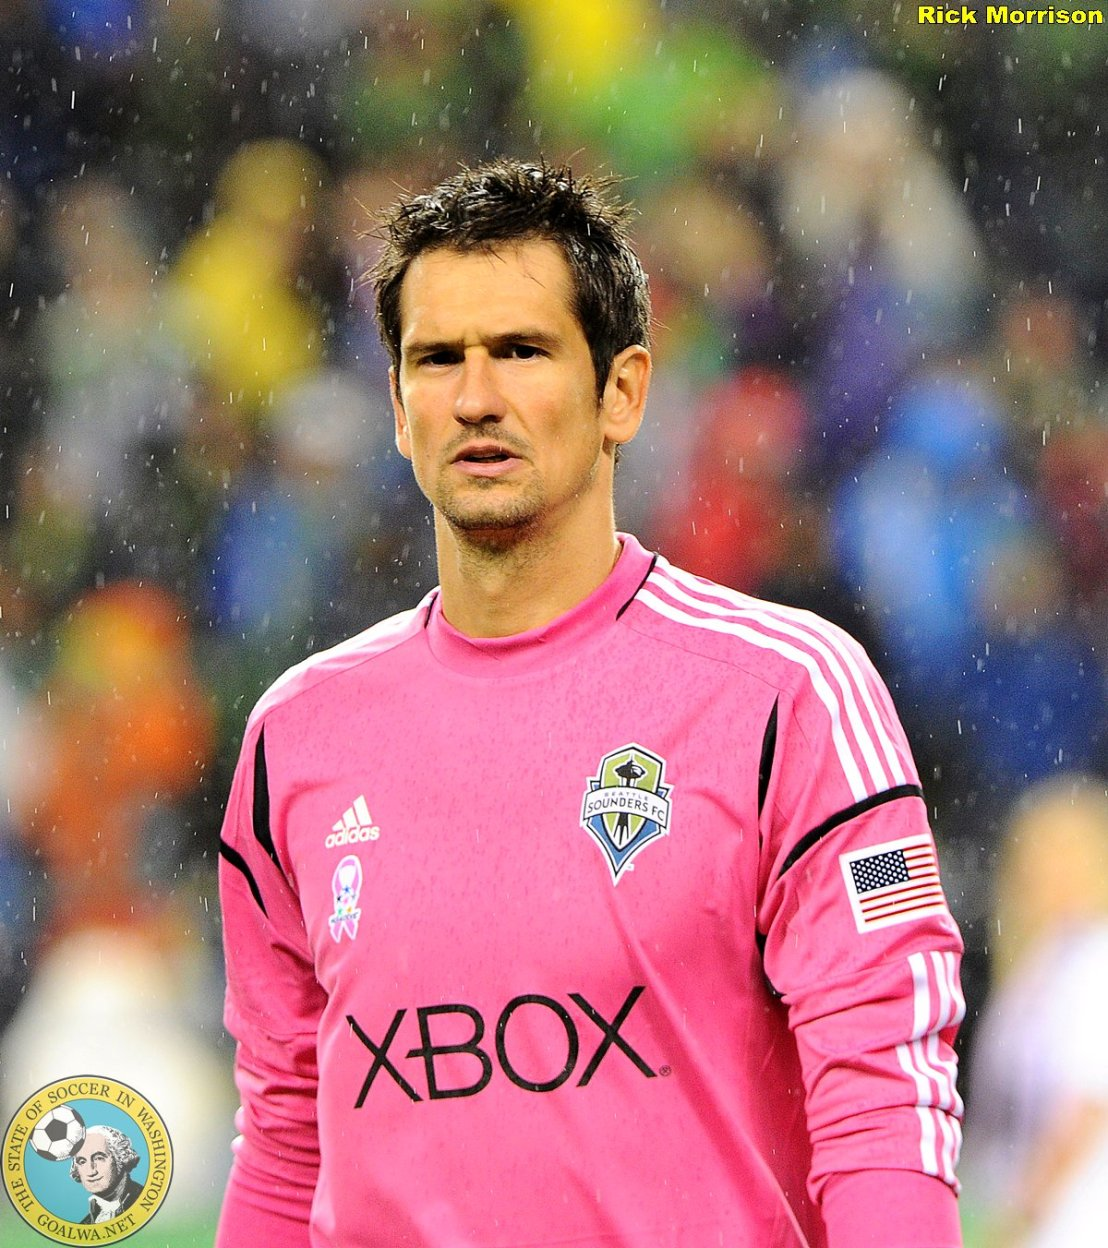 Sounders supporters pick goalkeeper Gspurning as 2012 player of year